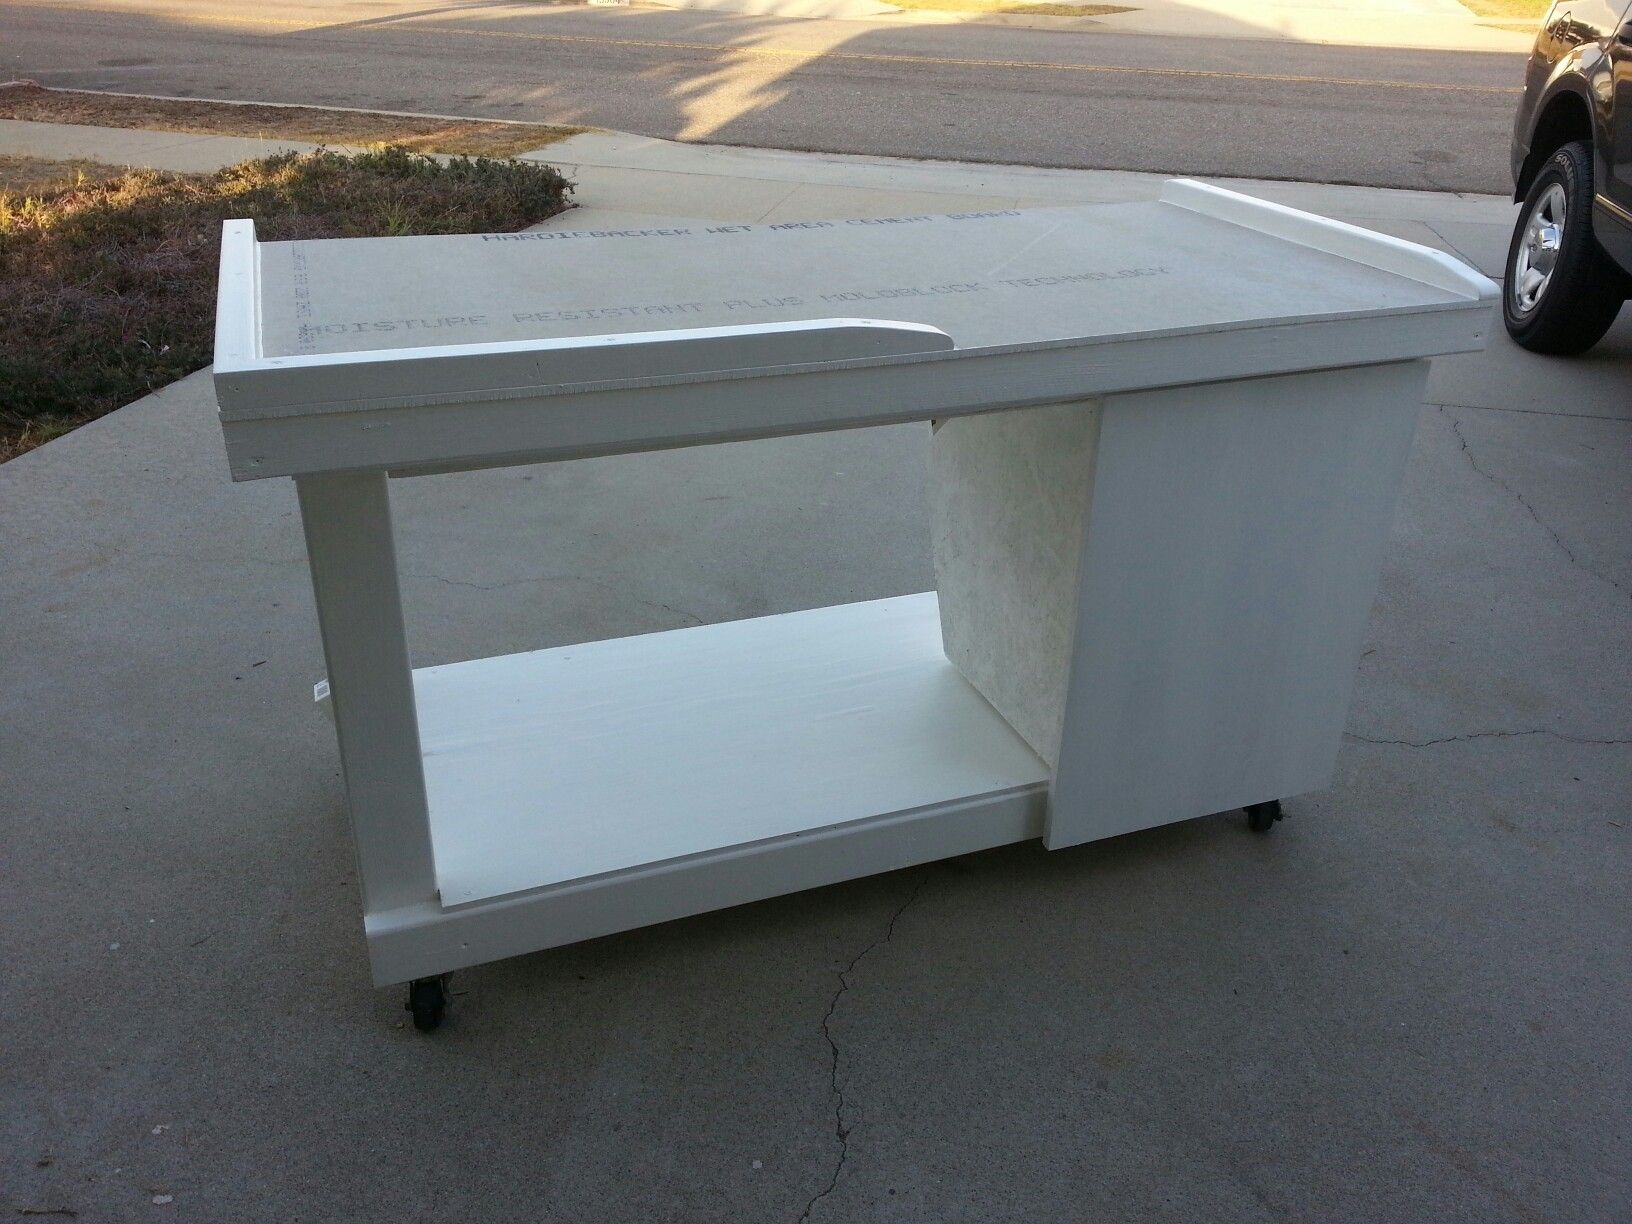 2x4 construction, a sheet of plywood, 3x5x1/2 Hardie cement board ...